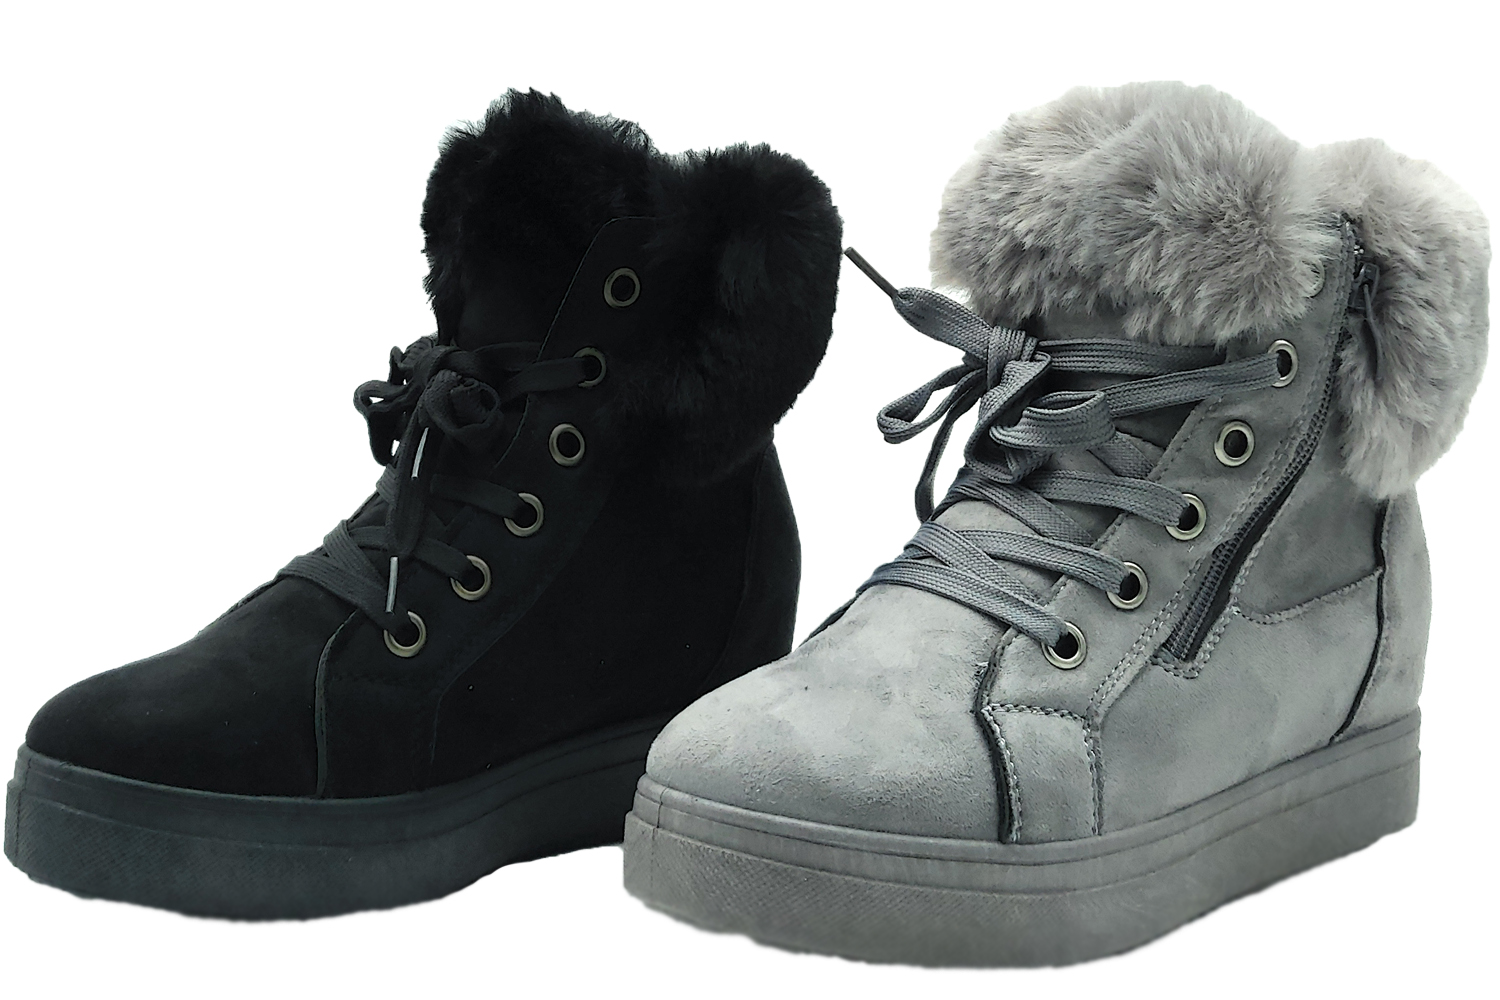 Shoes ankle boots lace-up woman's padded coat winter snow wedge hidden